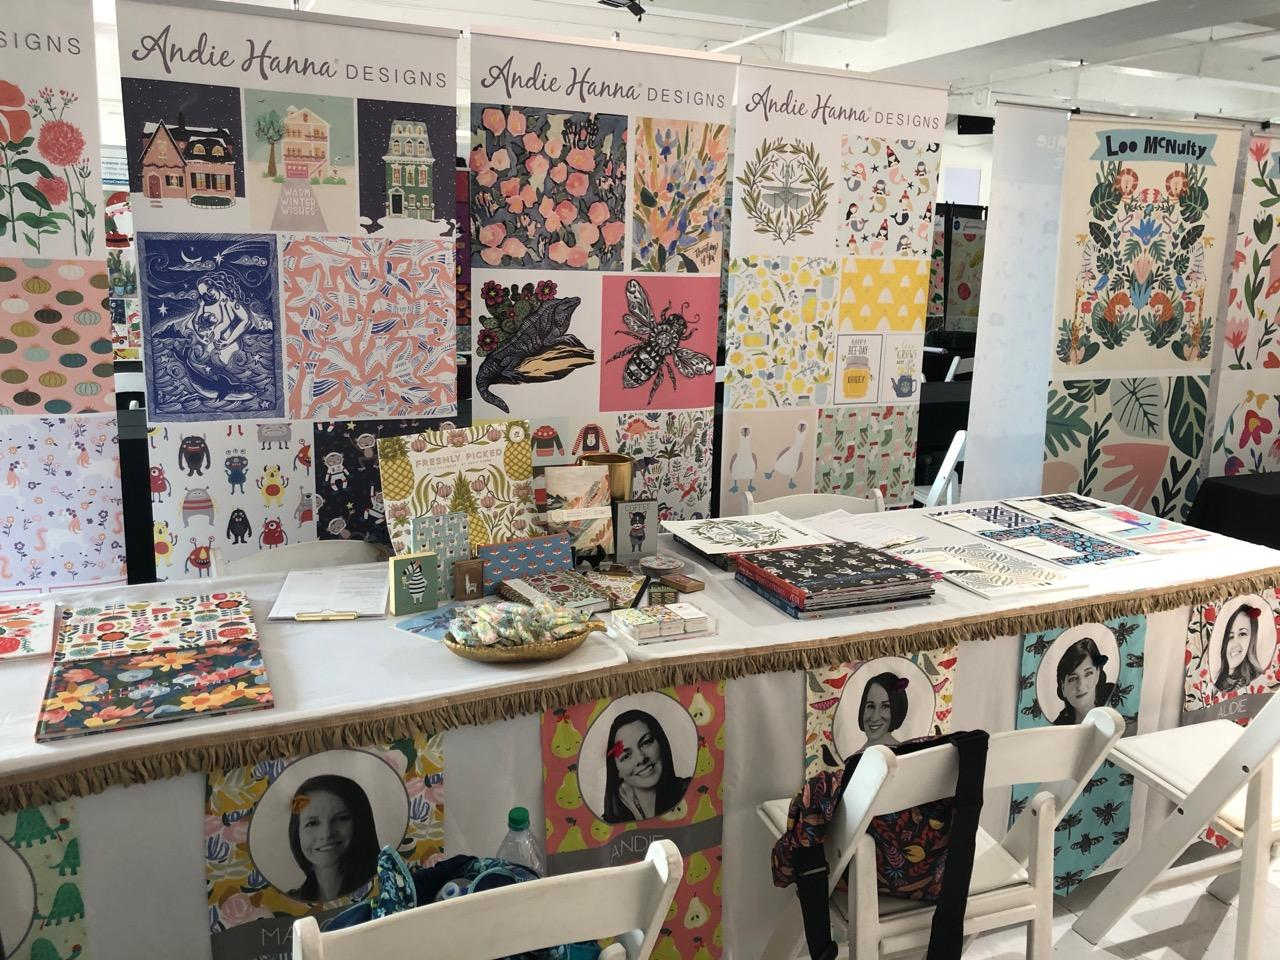 Andie Hanna booth at Blueprint Show 2019. Photo credit Andie Hanna 2019.